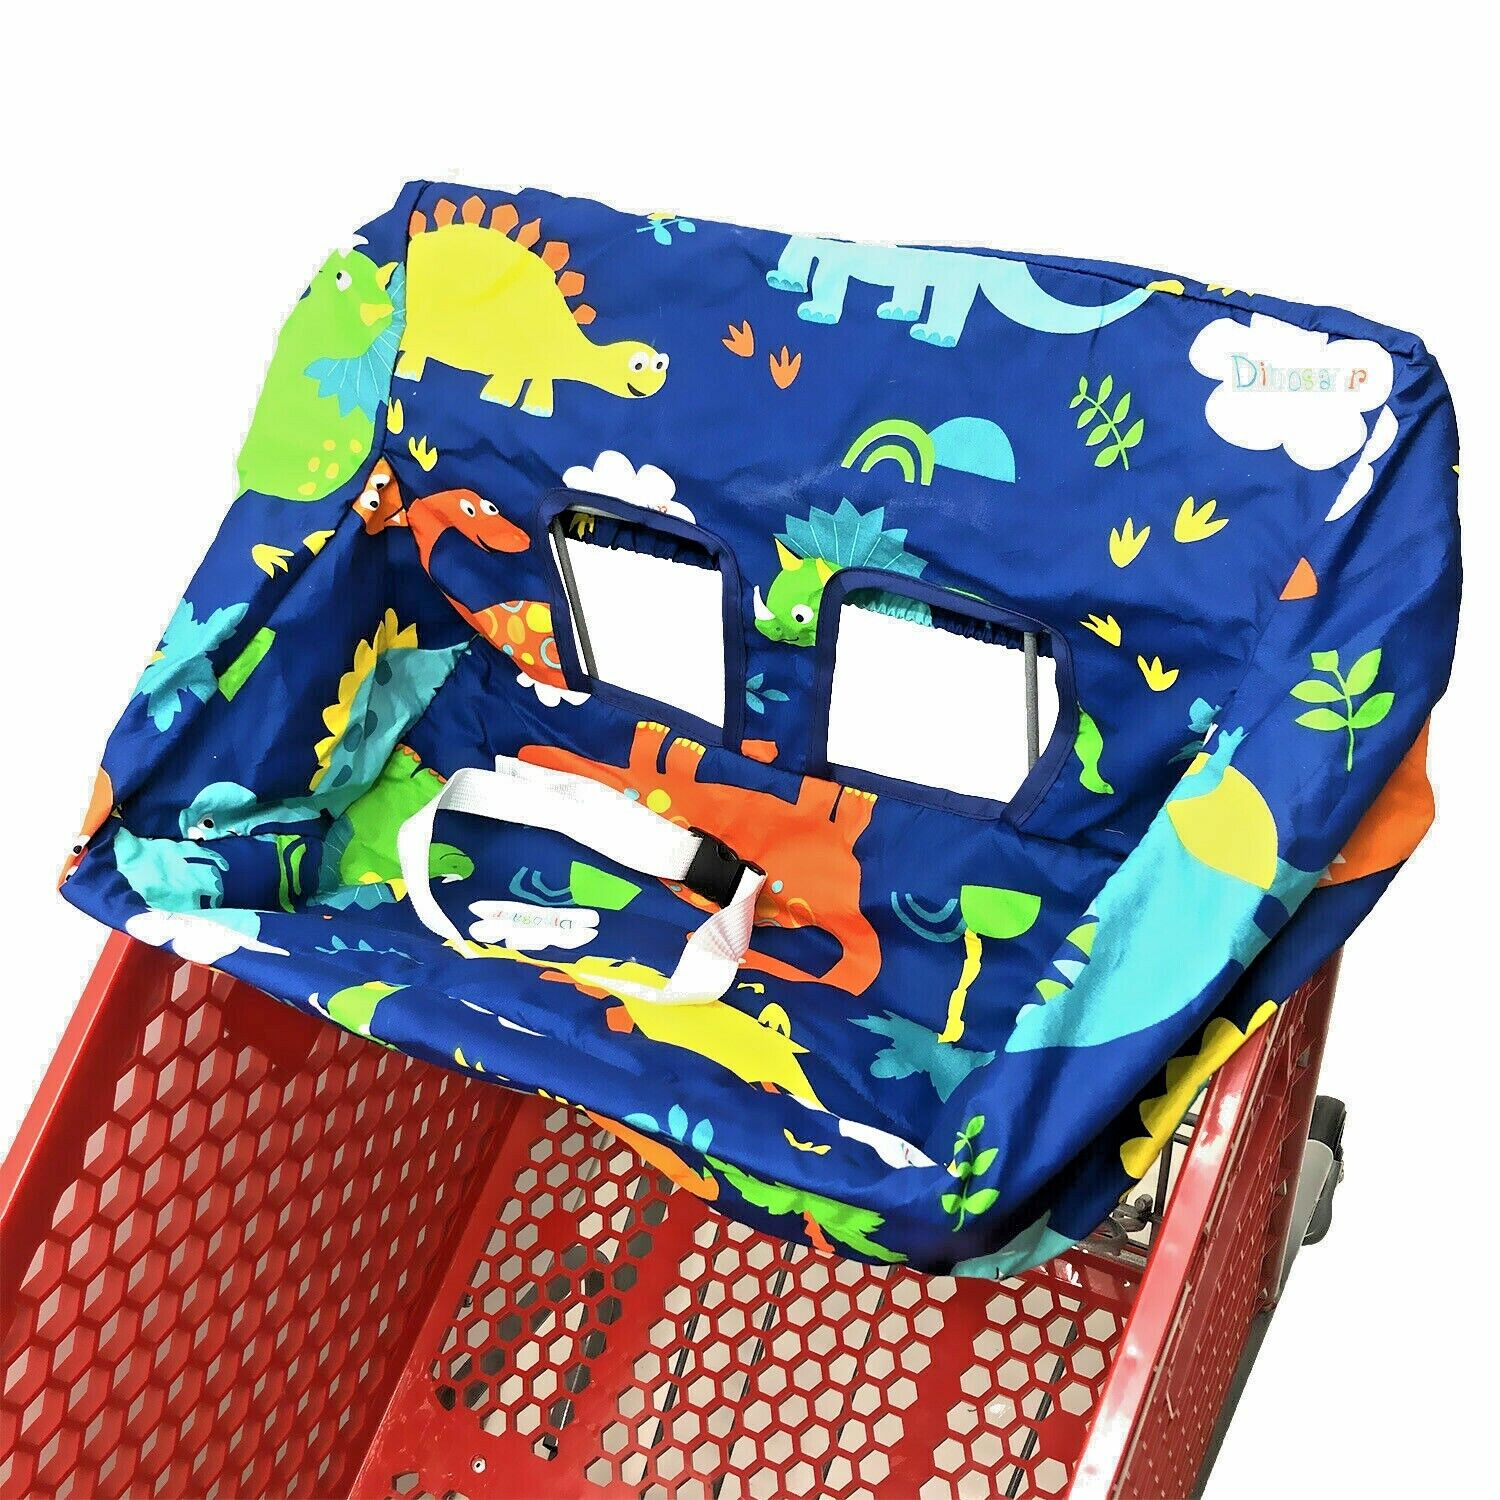 2-in-1 Shopping Cart Cover High Chair and Grocery Cart Cover